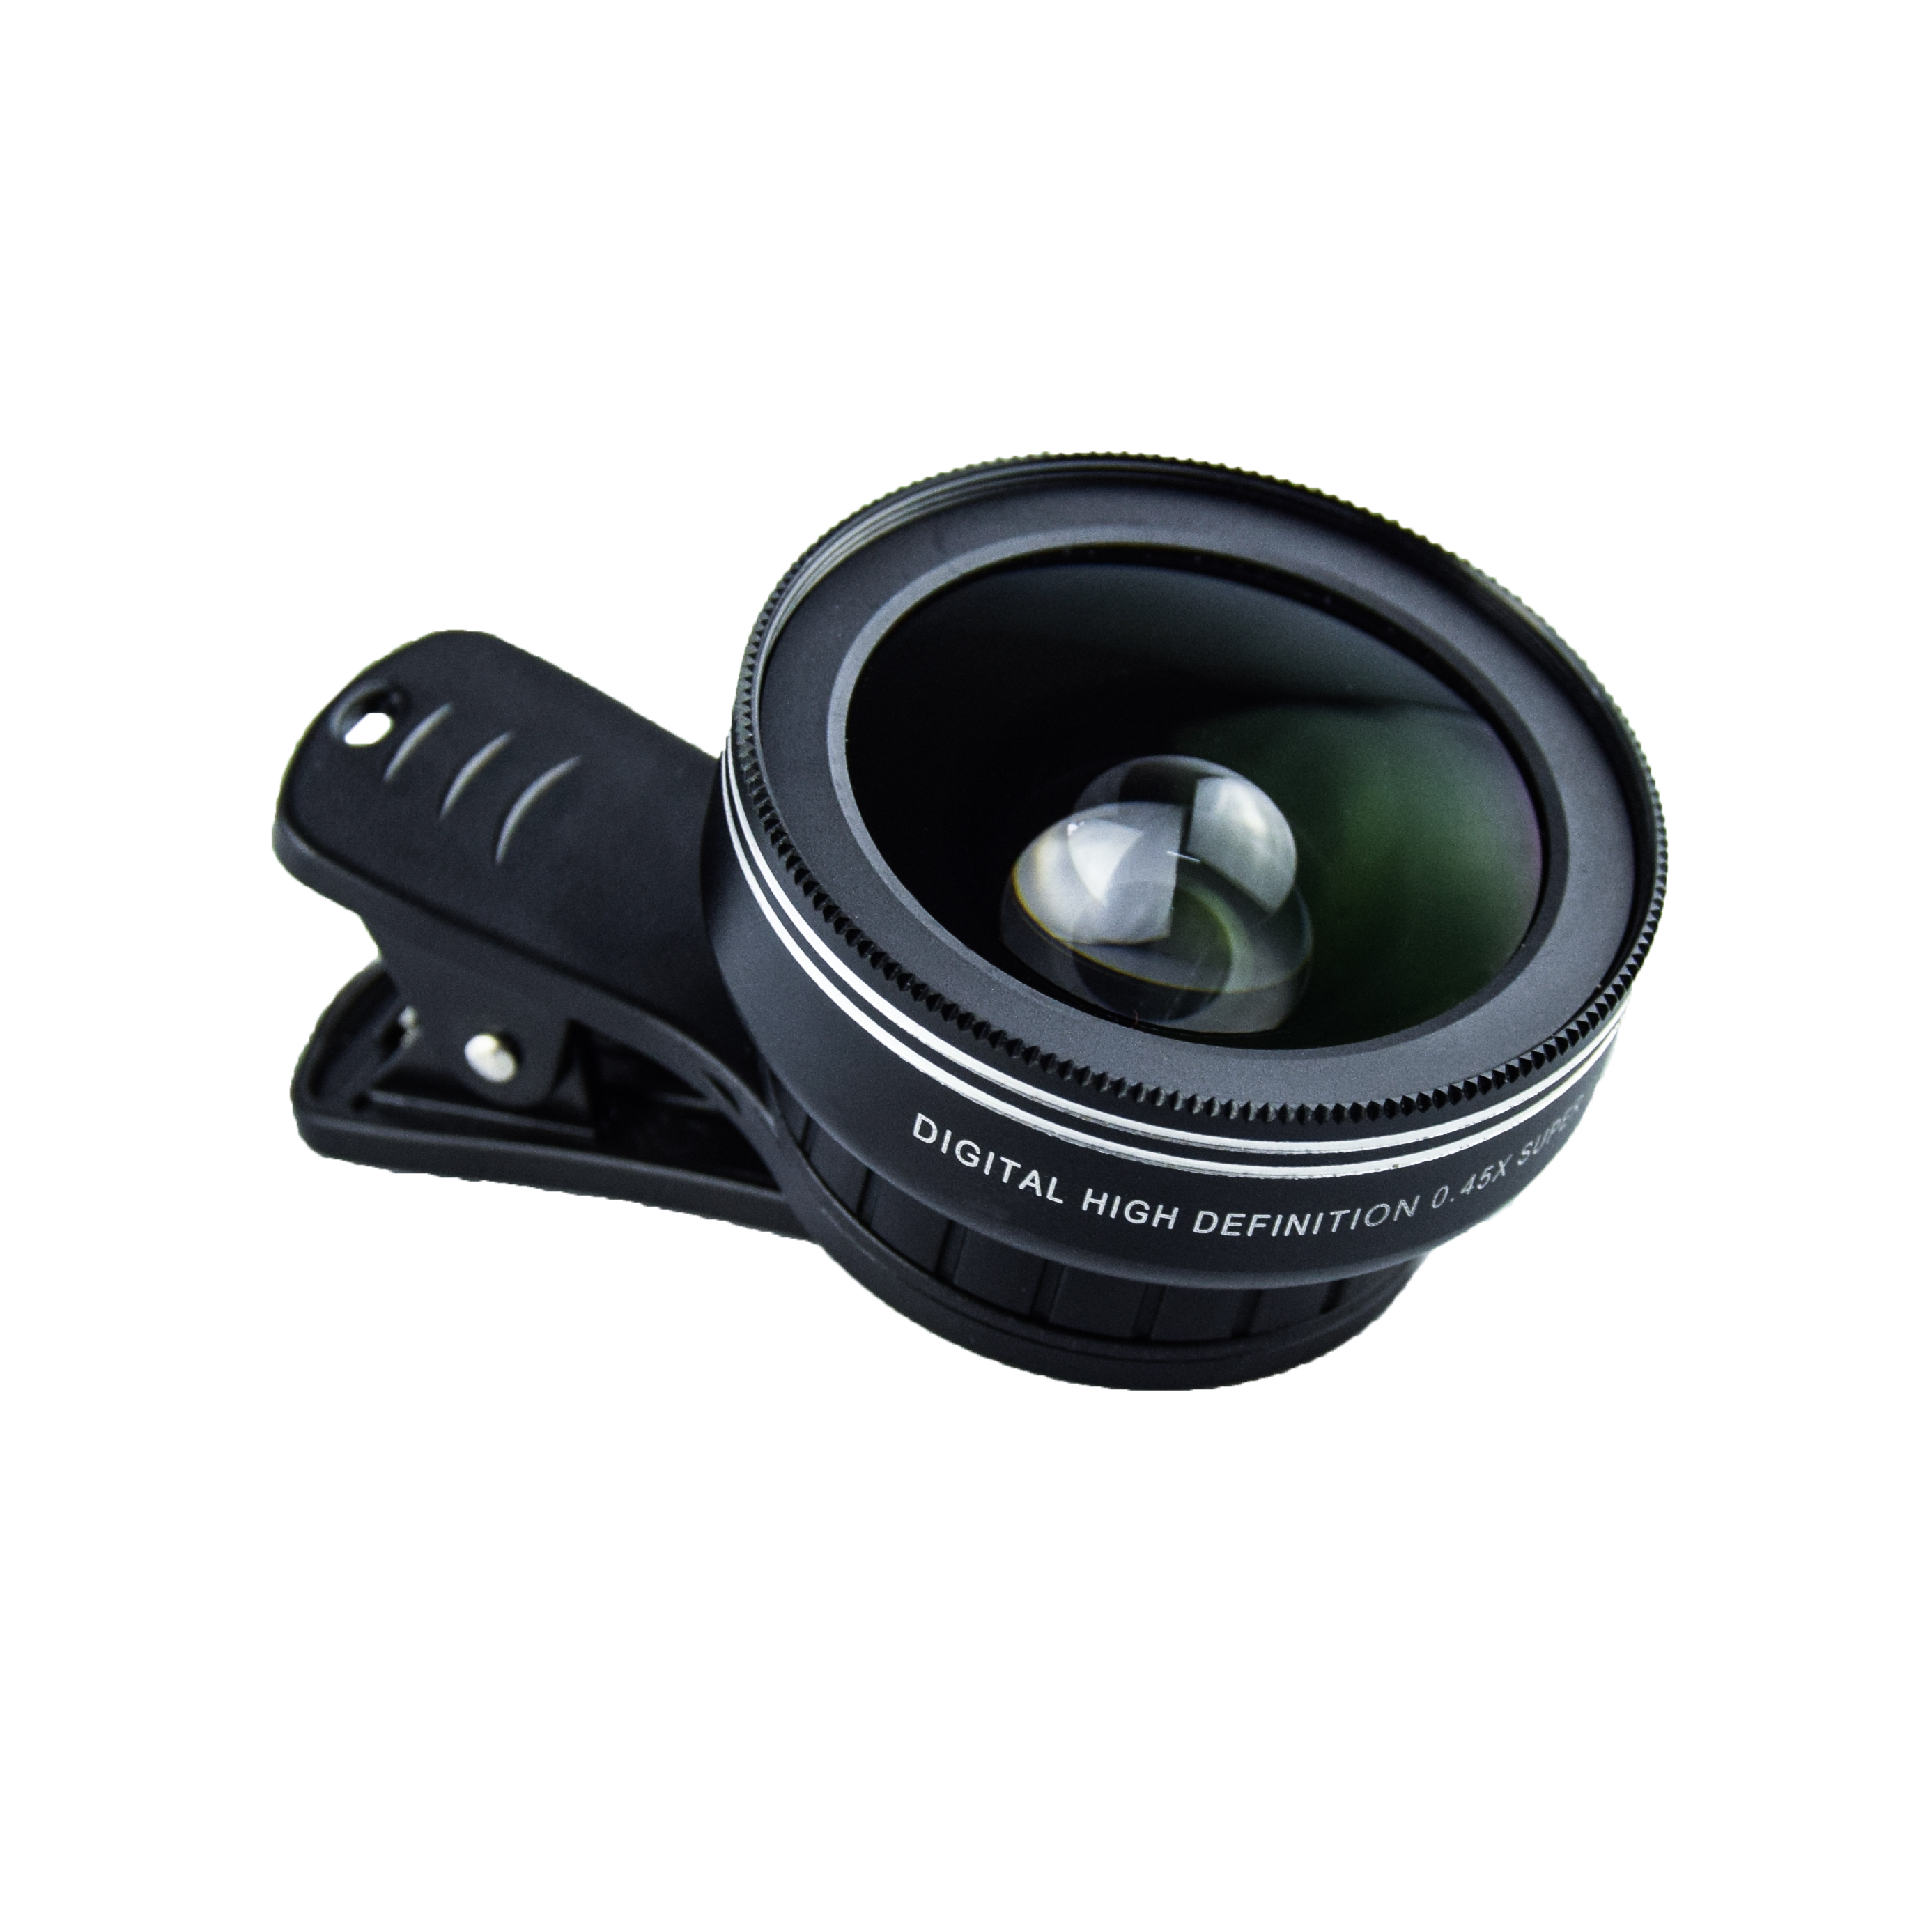 China supplier Nanyang wholesale 0.45 super wide angle camera Marco lens suitable for cell <strong>phone</strong>.